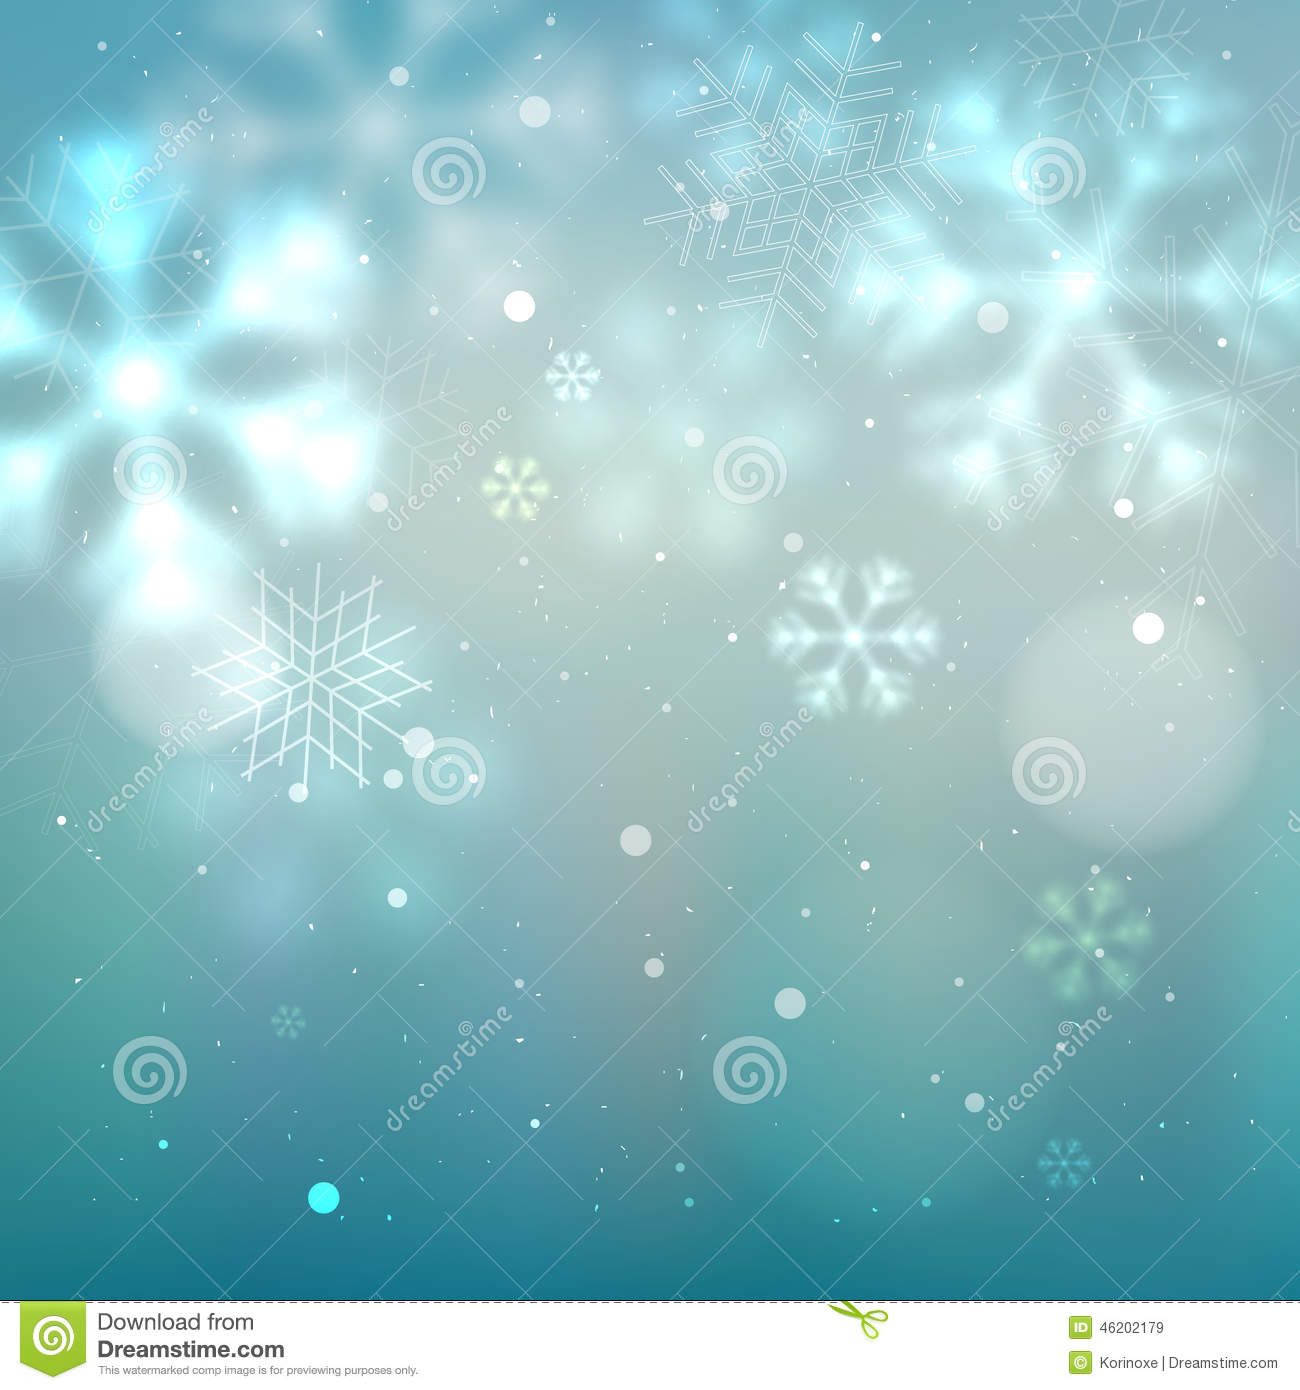 blue and turquoise winter background stock vector image 46202179 blue and turquoise winter background